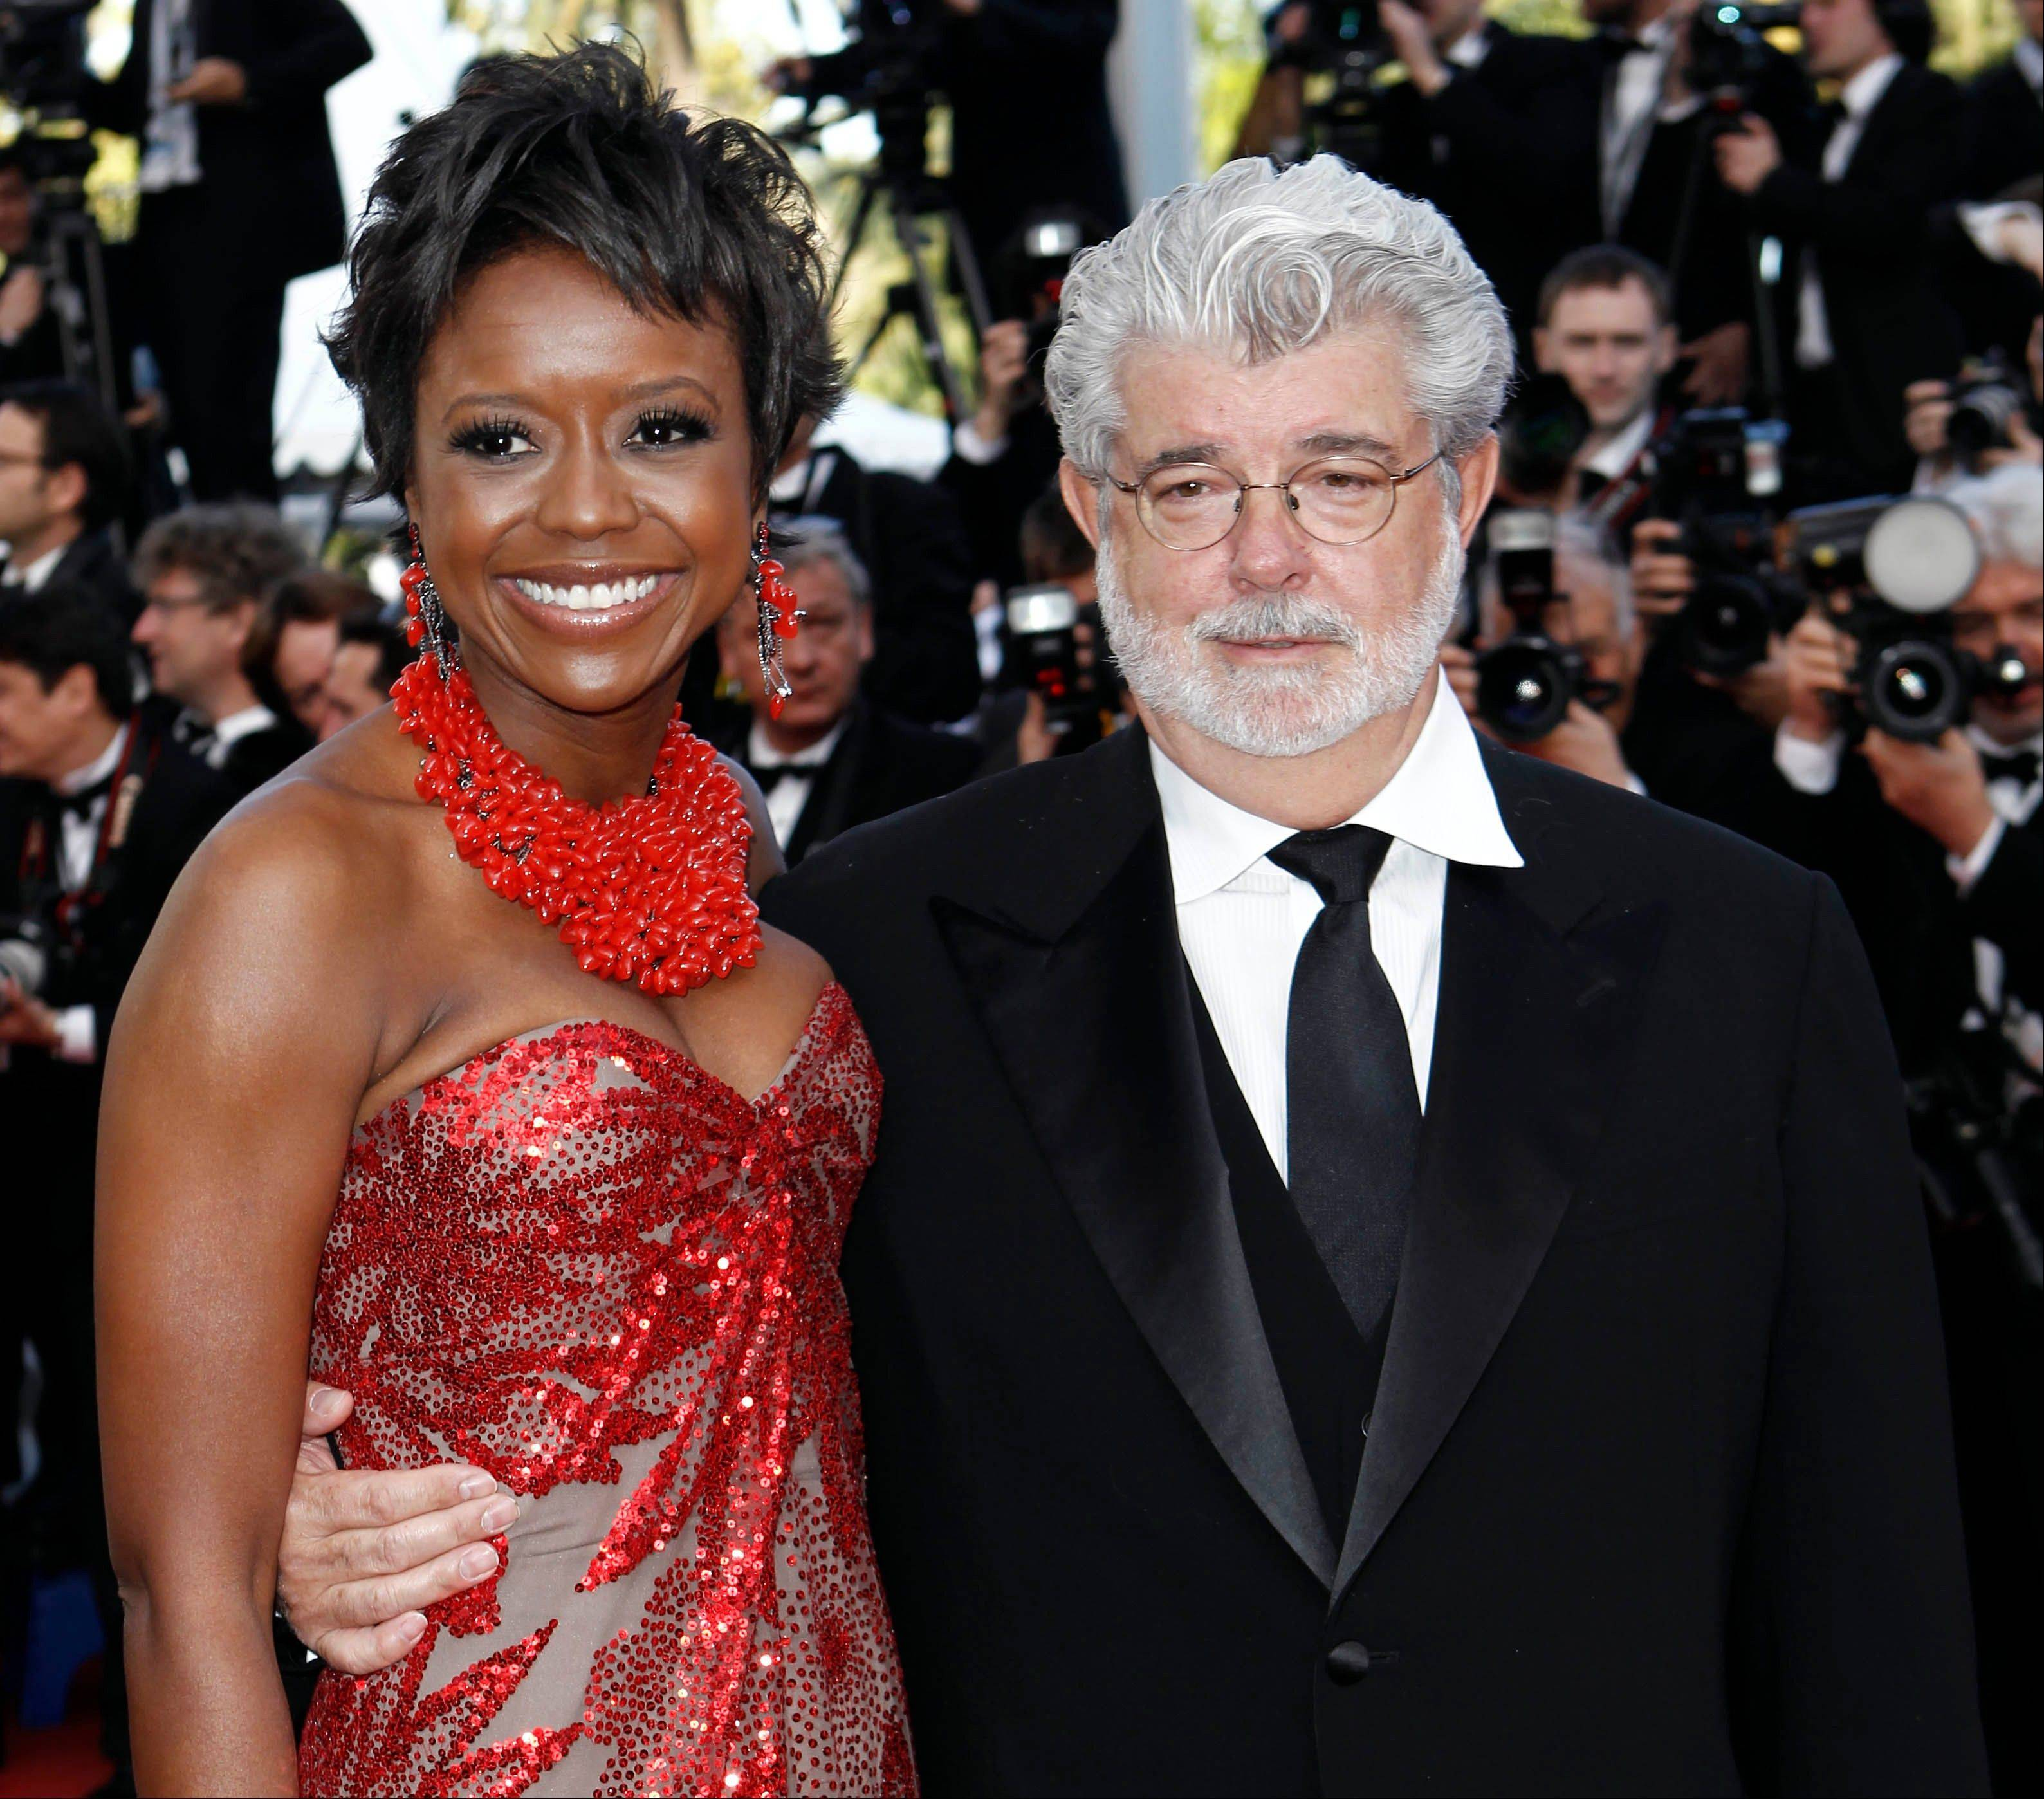 Filmmaker George Lucas recently got engaged to investment firm president Mellody Hobson.